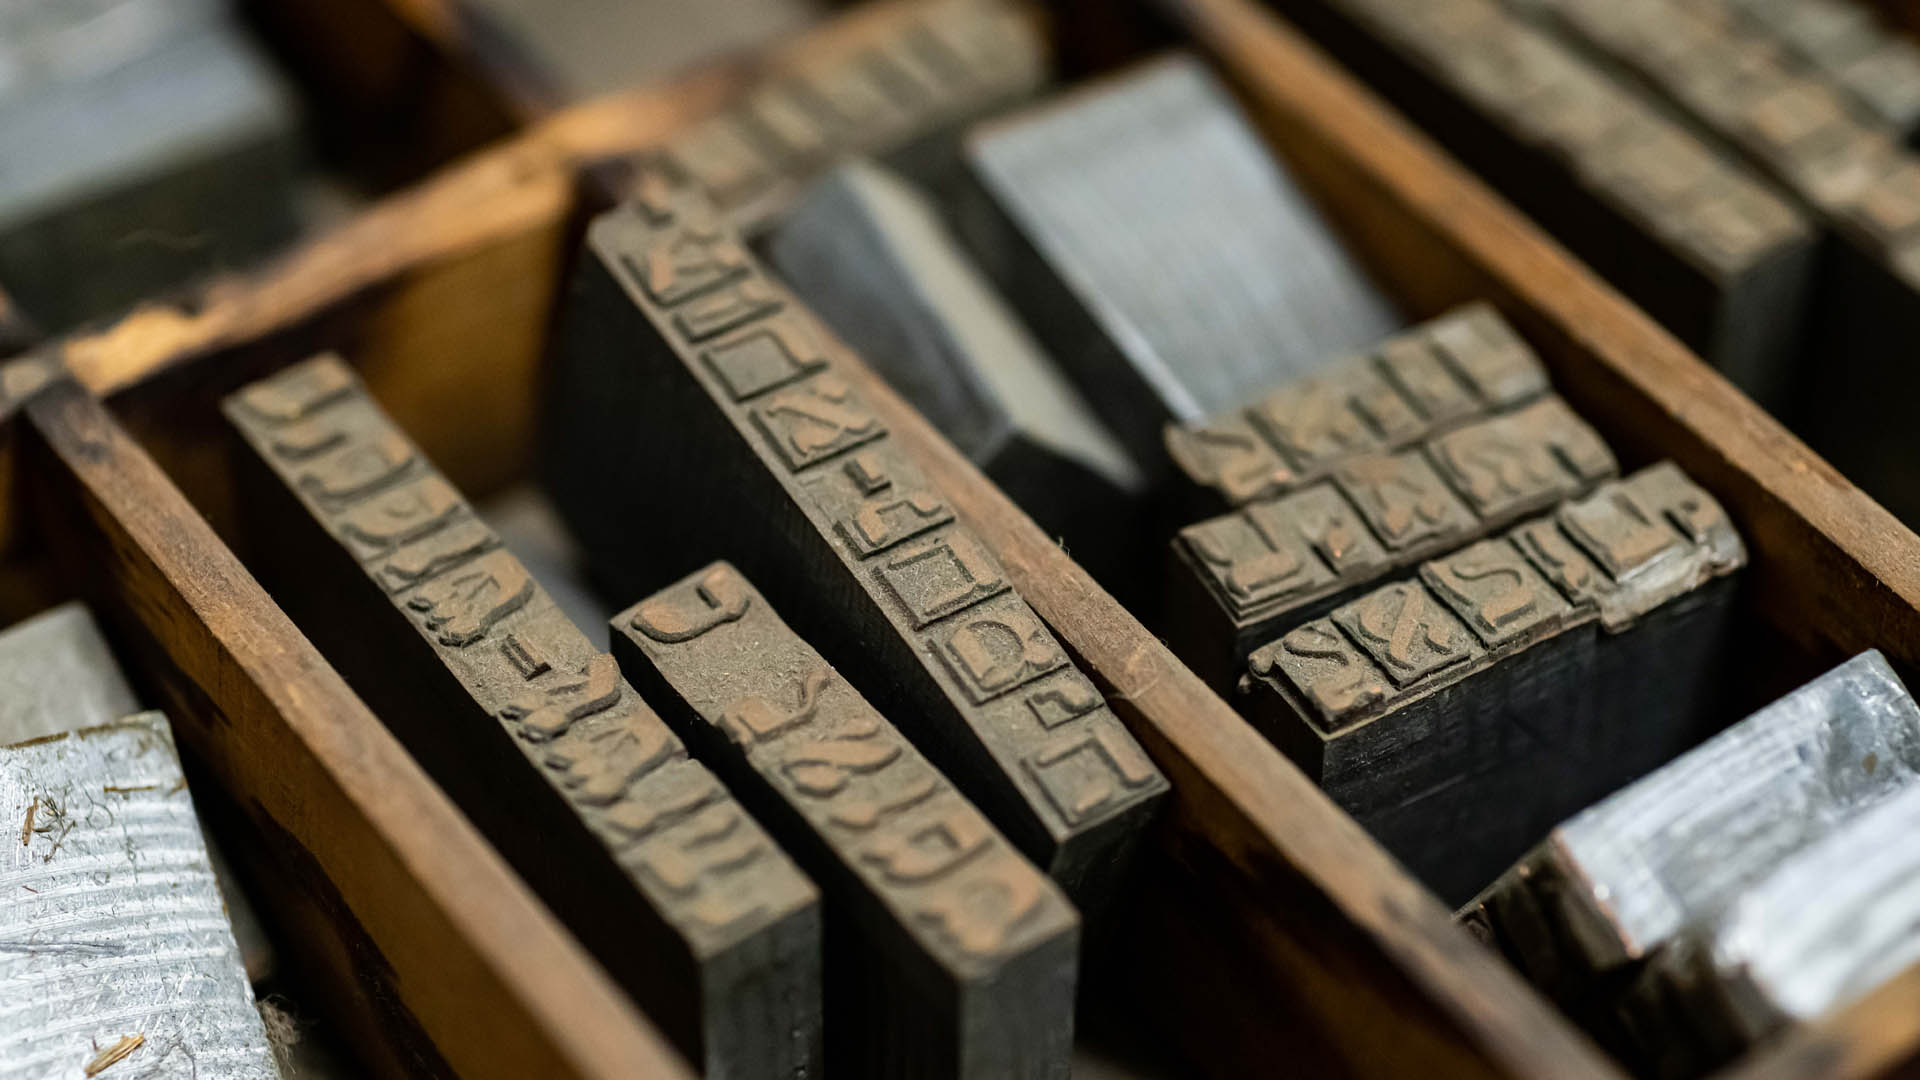 Closeup of printing type in a wooden printer's tray